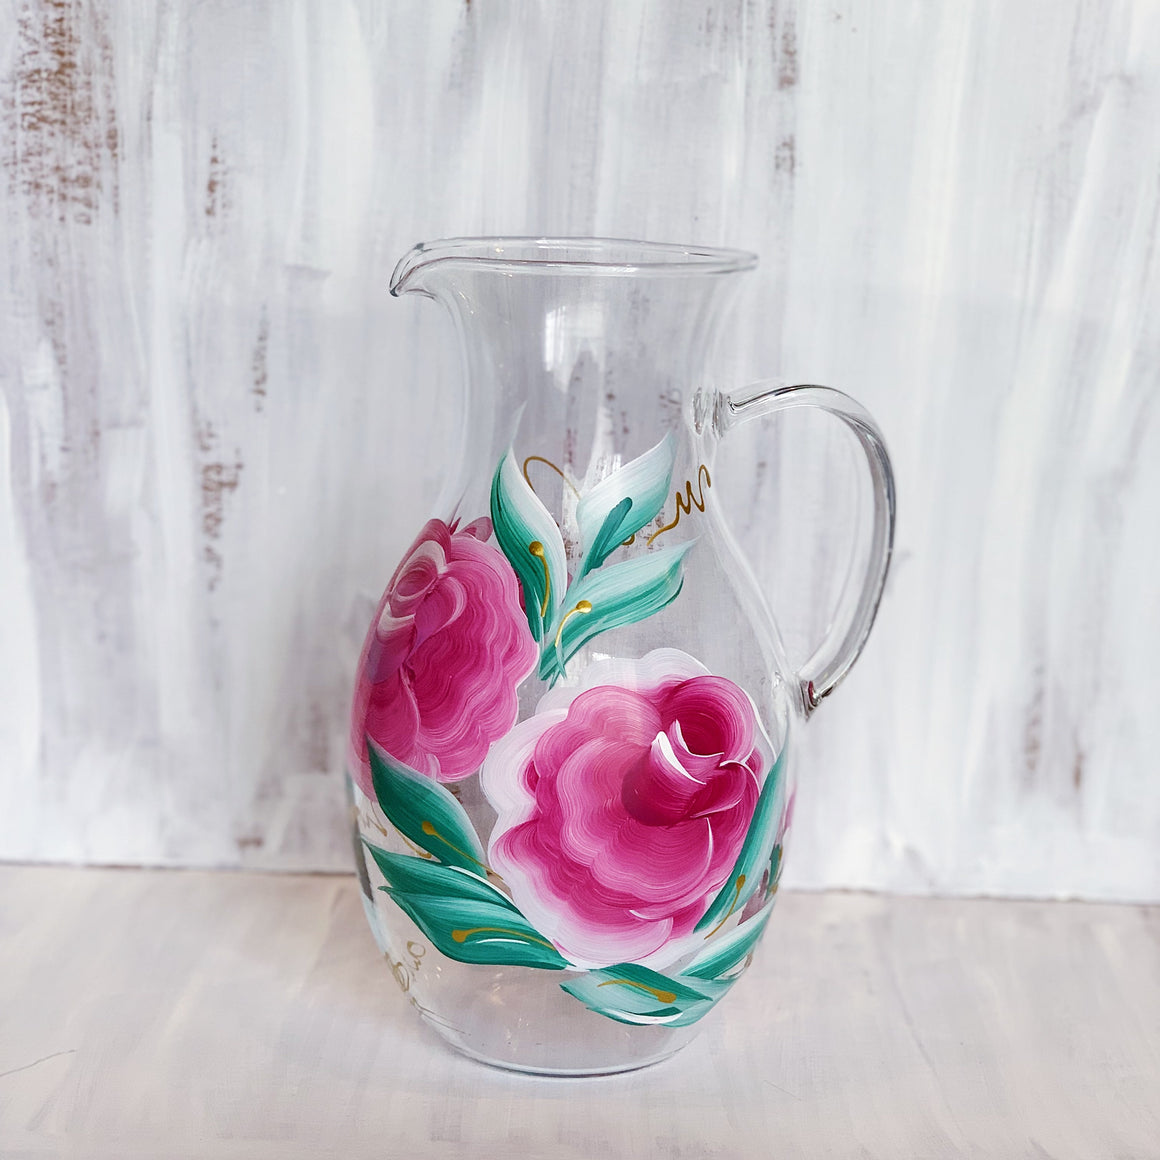 Blush Rose Pitcher 1.5 QT